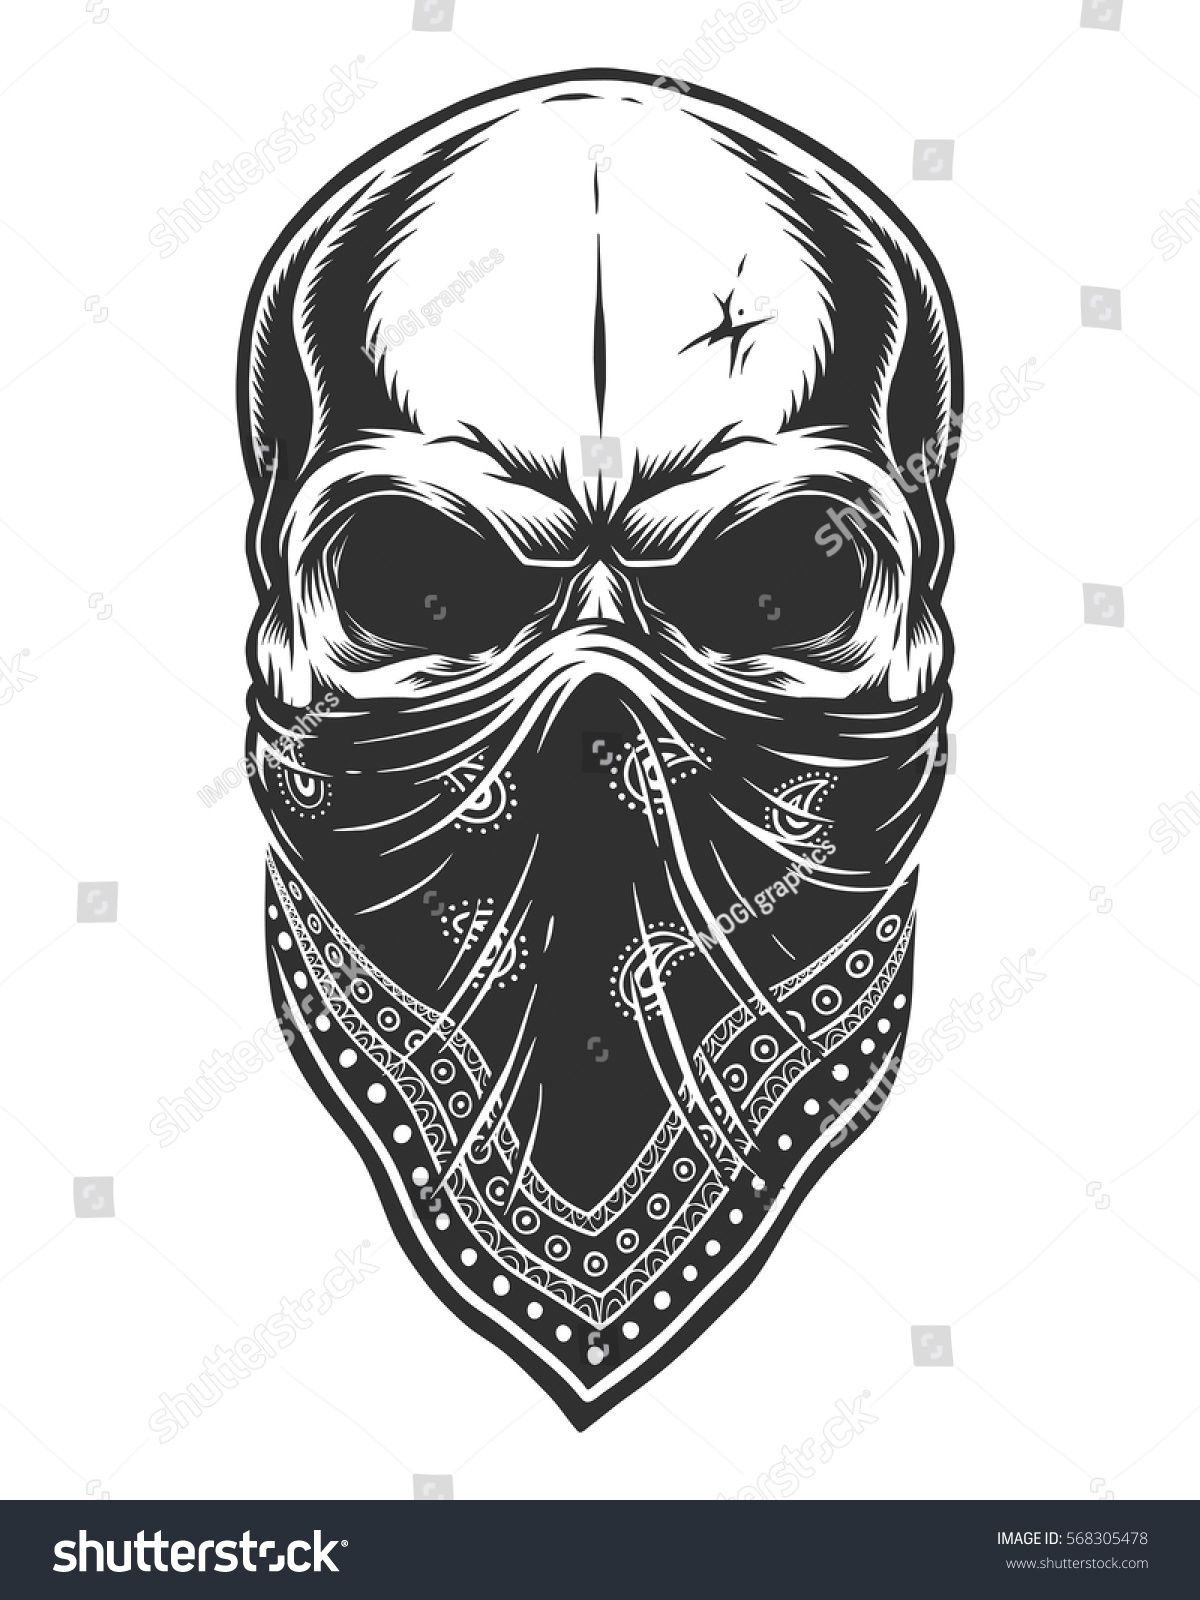 Illustration of skull in bandana on face. Monochrome line